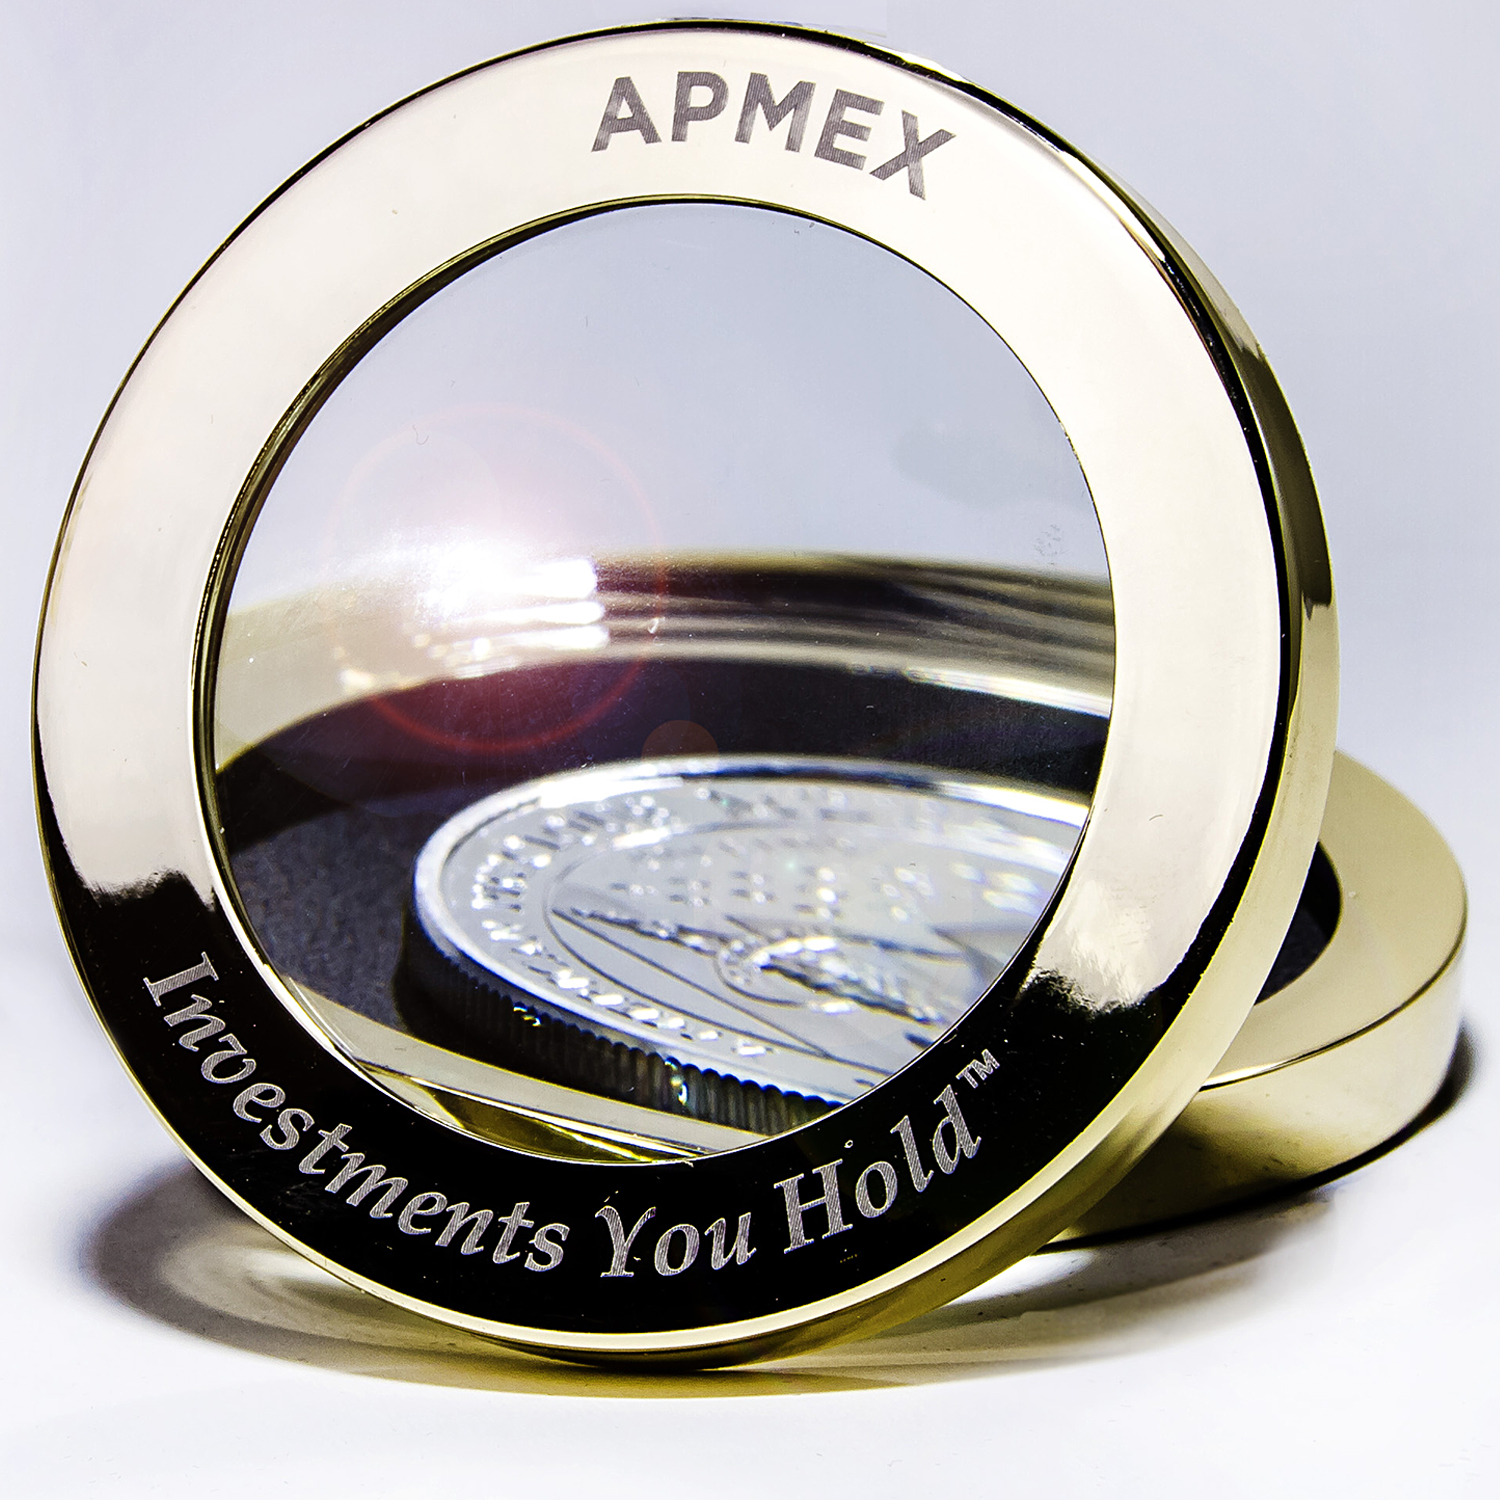 APMEX - Paperweight Coin Magnifier - Promo Item